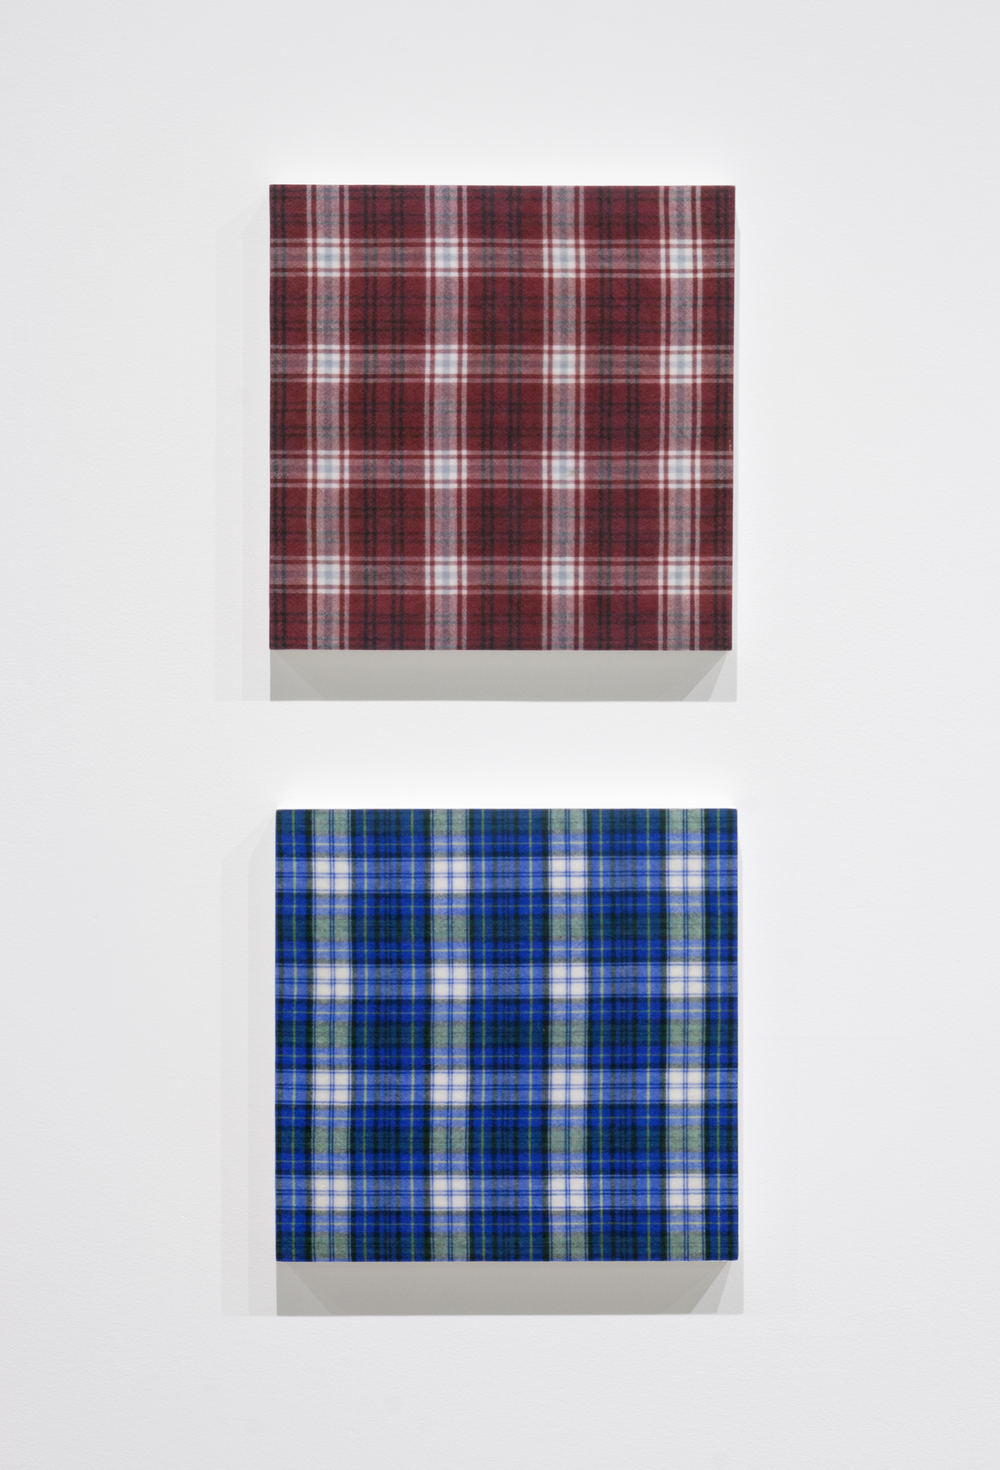 Shirt (Burgundy Plaid) , 2015, gel medium transfer on panel, 25.5 x 25.5 cm (10 x 10 in);  Shirt (Blue Plaid) , 2015, gel medium transfer on panel, 25.5 x 25.5 cm (10 x 10 in)